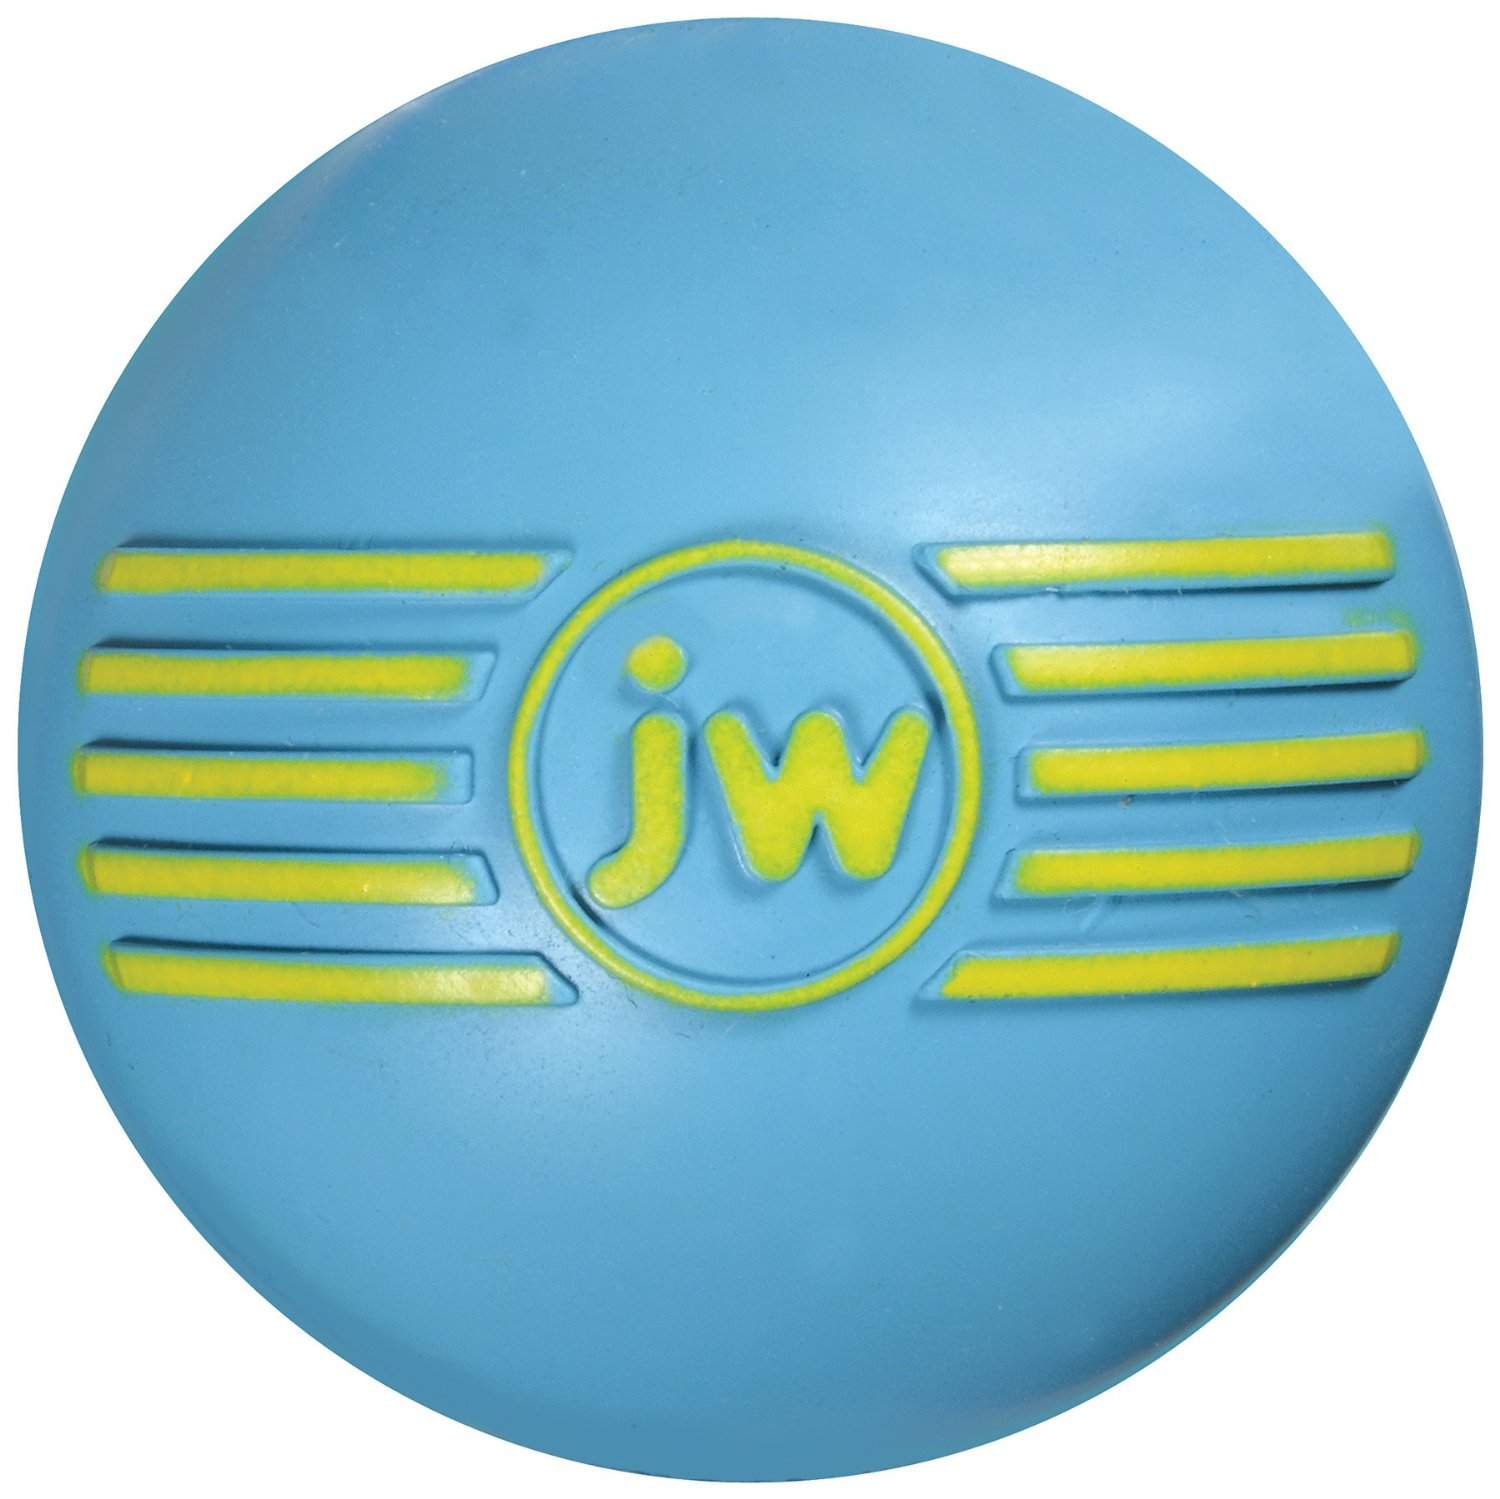 Details about JW PET ISqueak Squeaker Dog Puppy Fetch Chew Toy SMALL BALL